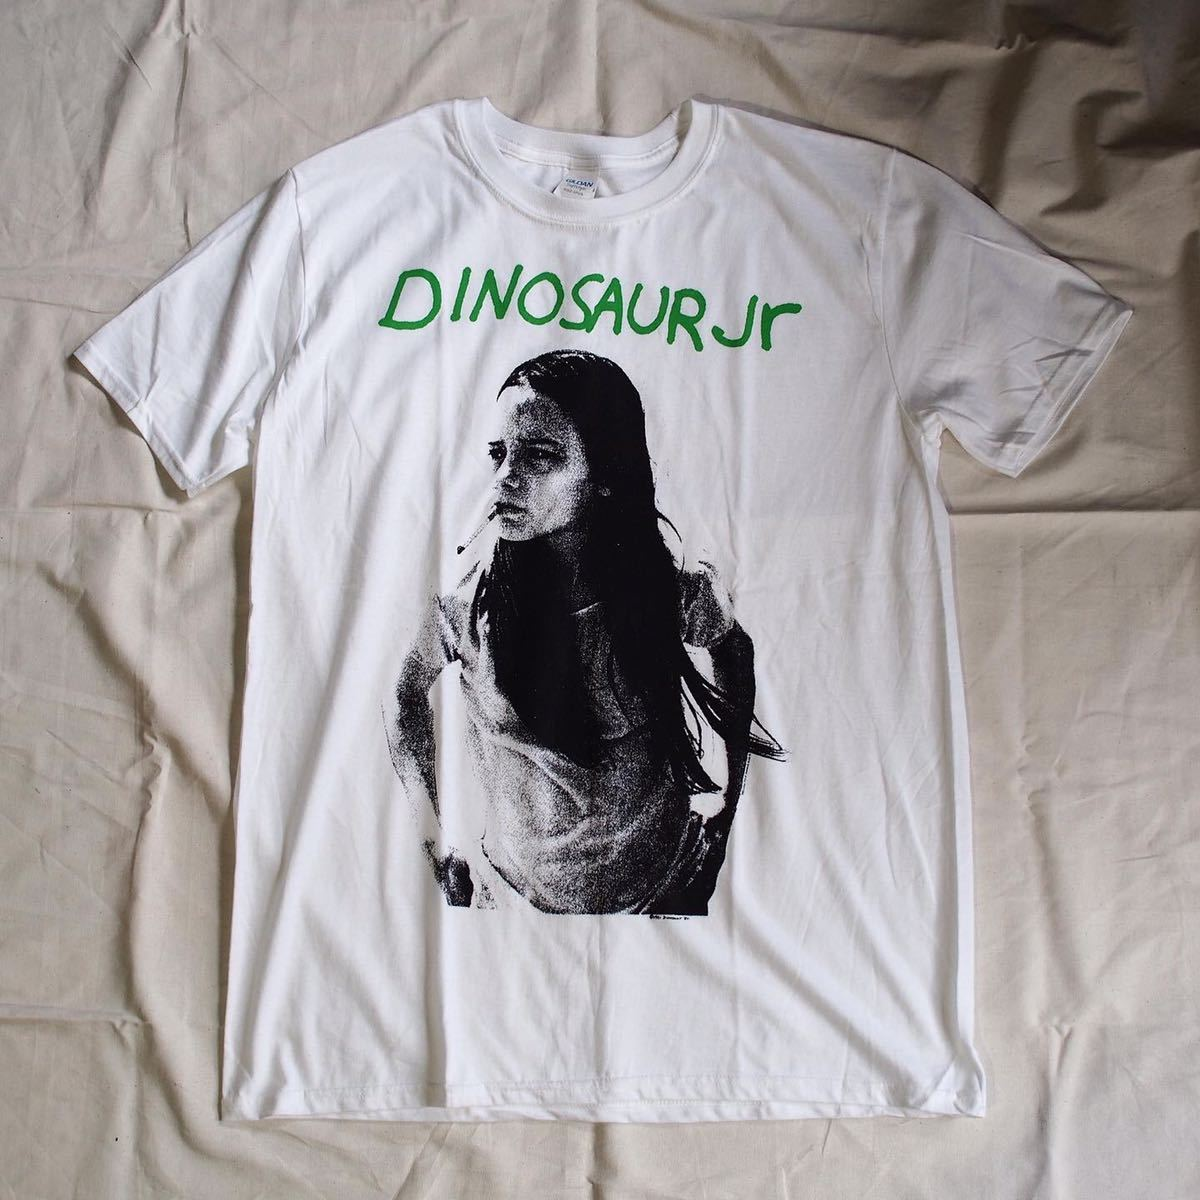 Official [Dinosaur Jr.]L ダイナソージュニア Tシャツ バンド Nirvana Blur Sonic Youth oasis joy division Stone Roses The Cure_画像1